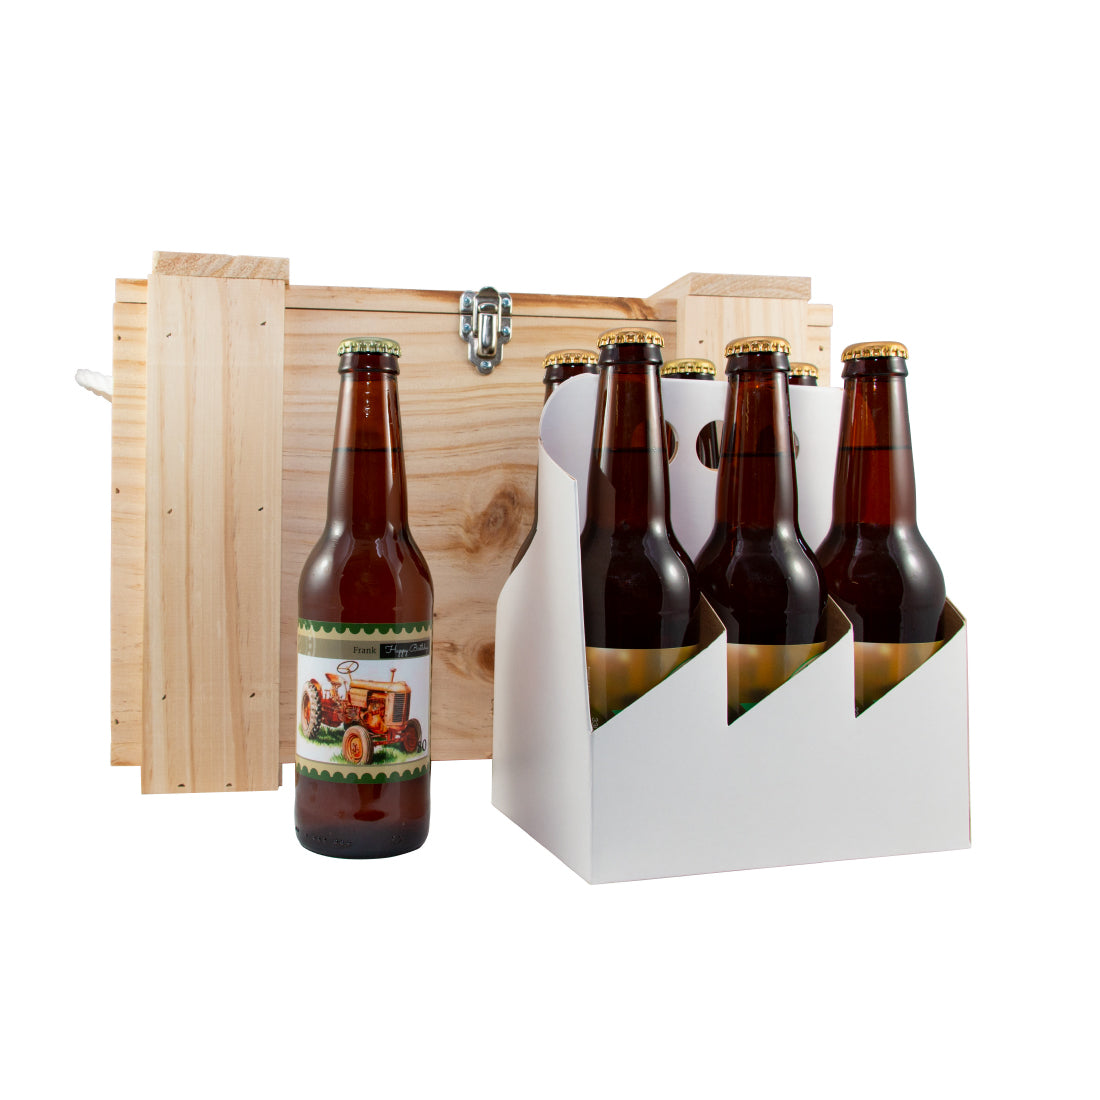 Craft Lager 4.0% - Wooden Beer Box - Case of 24